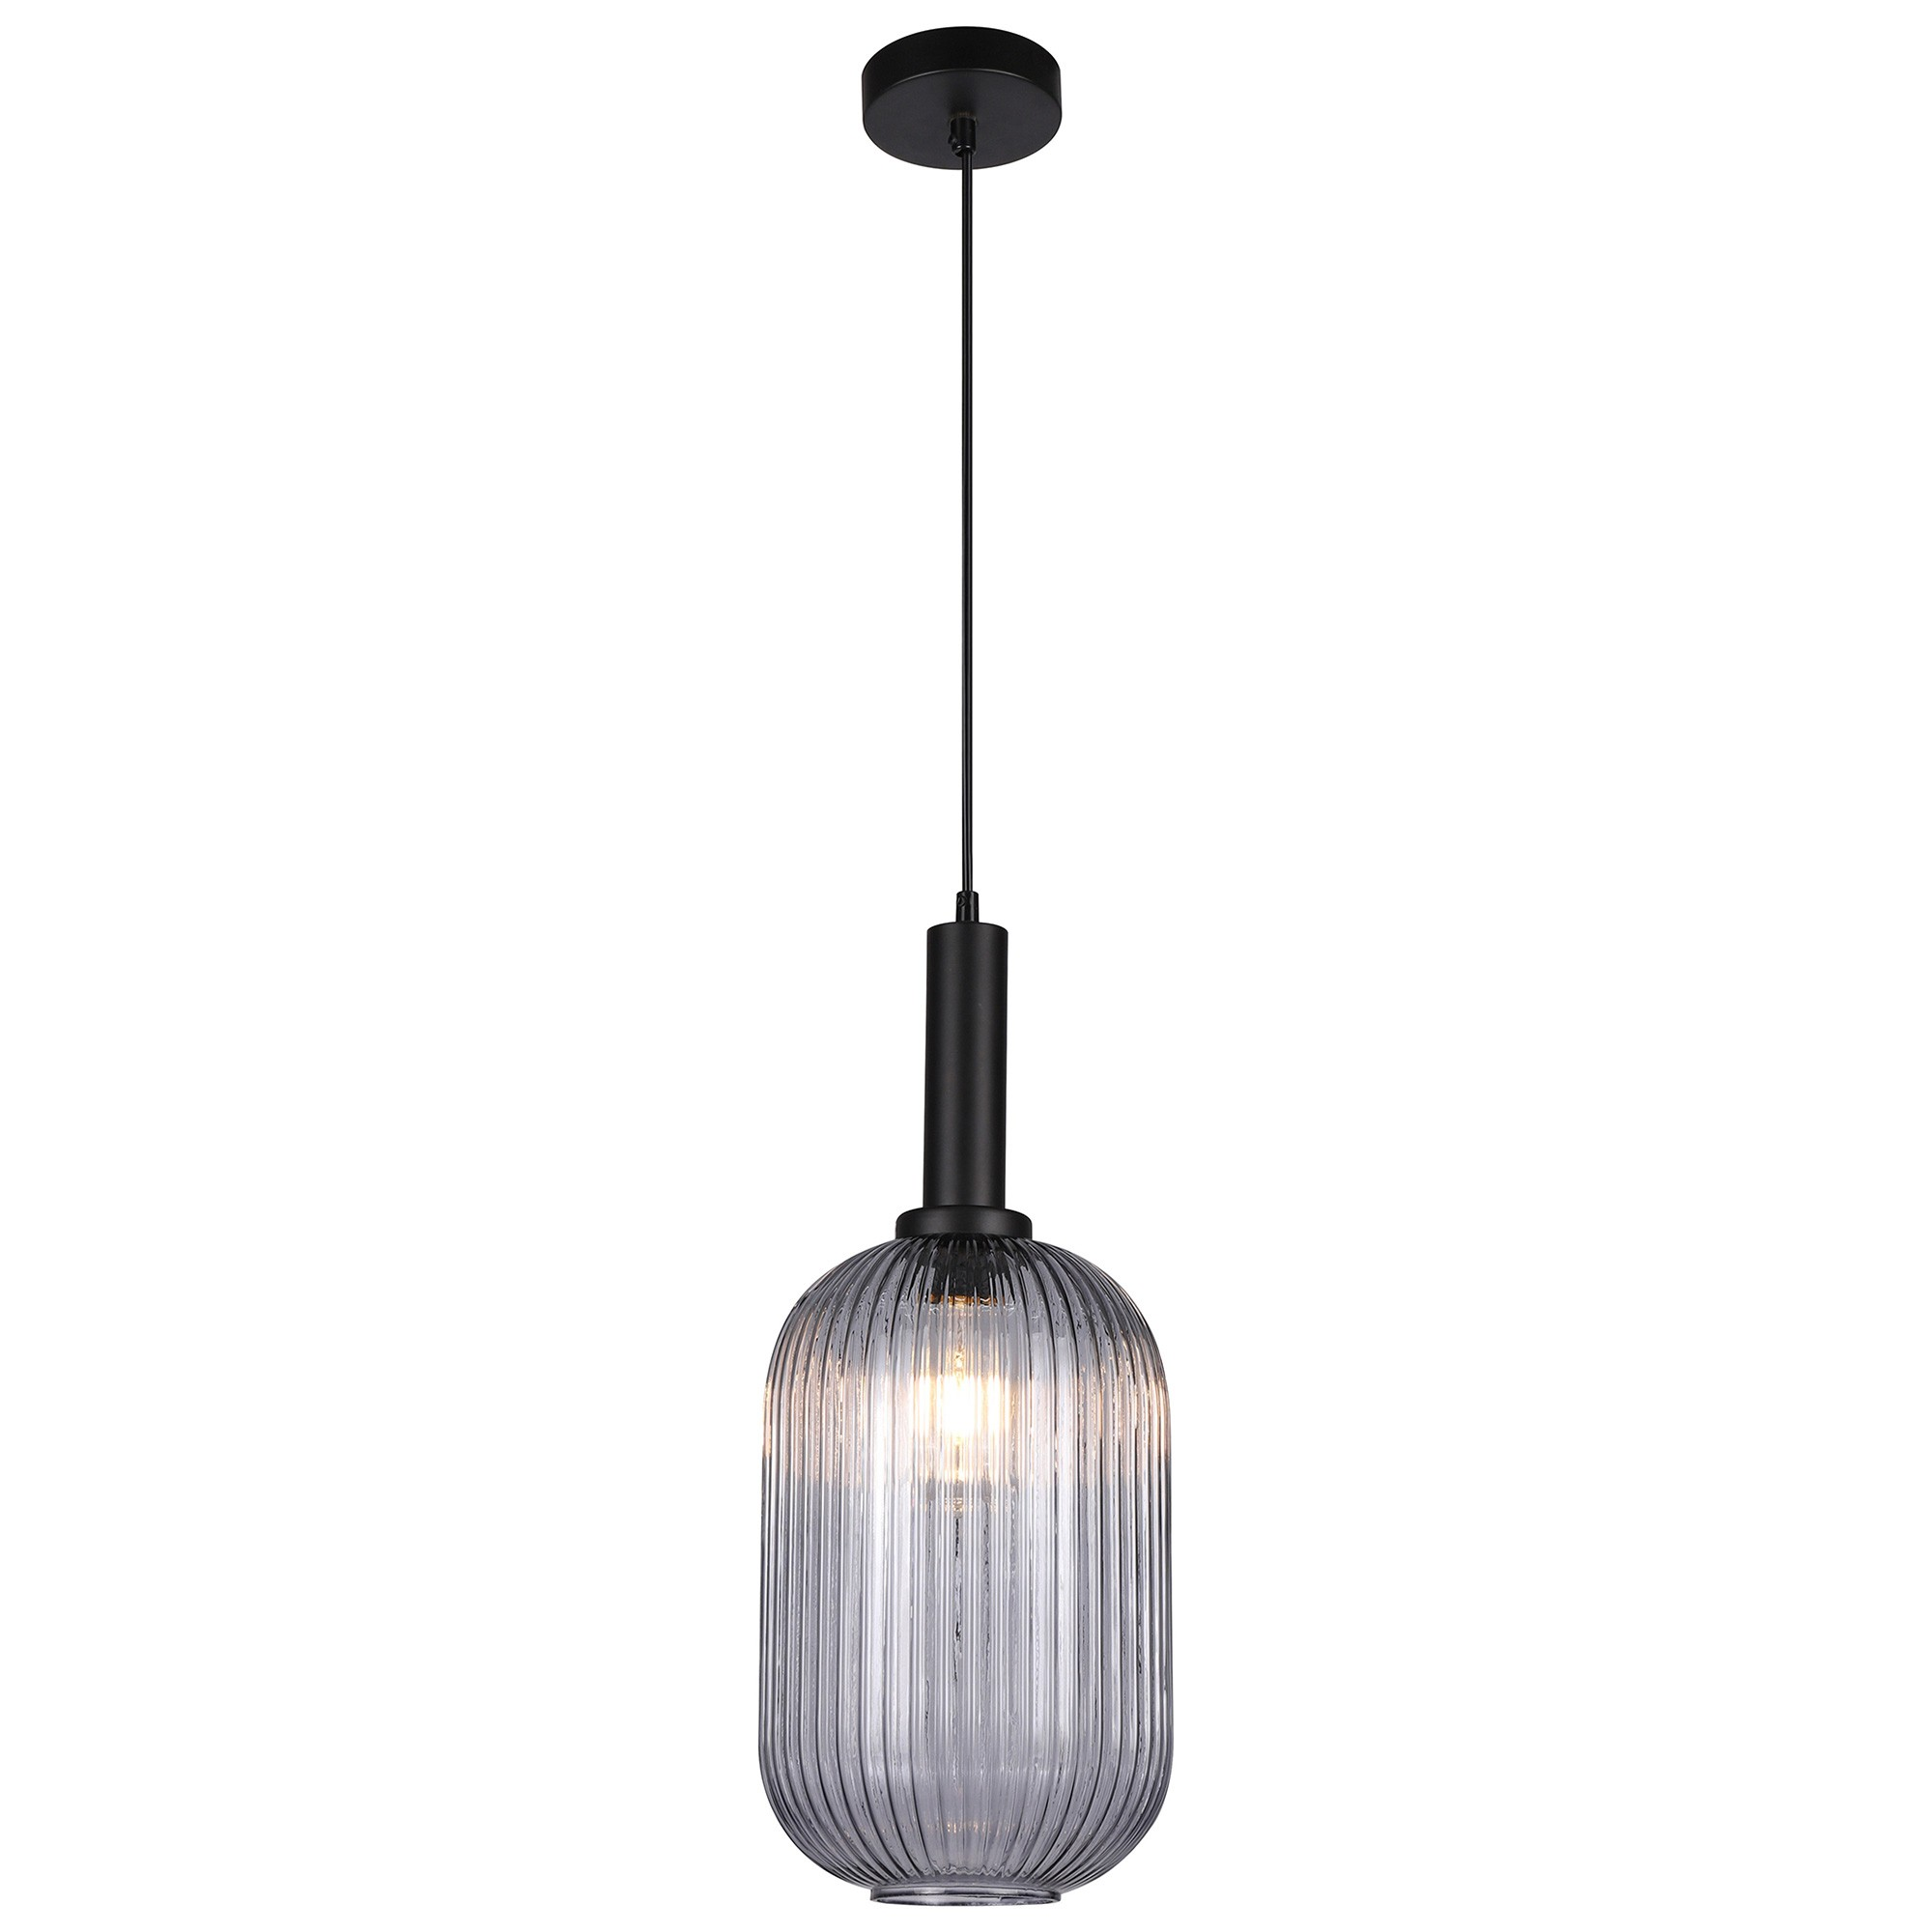 Tius Ribbed Glass Pendant Light, Oblong